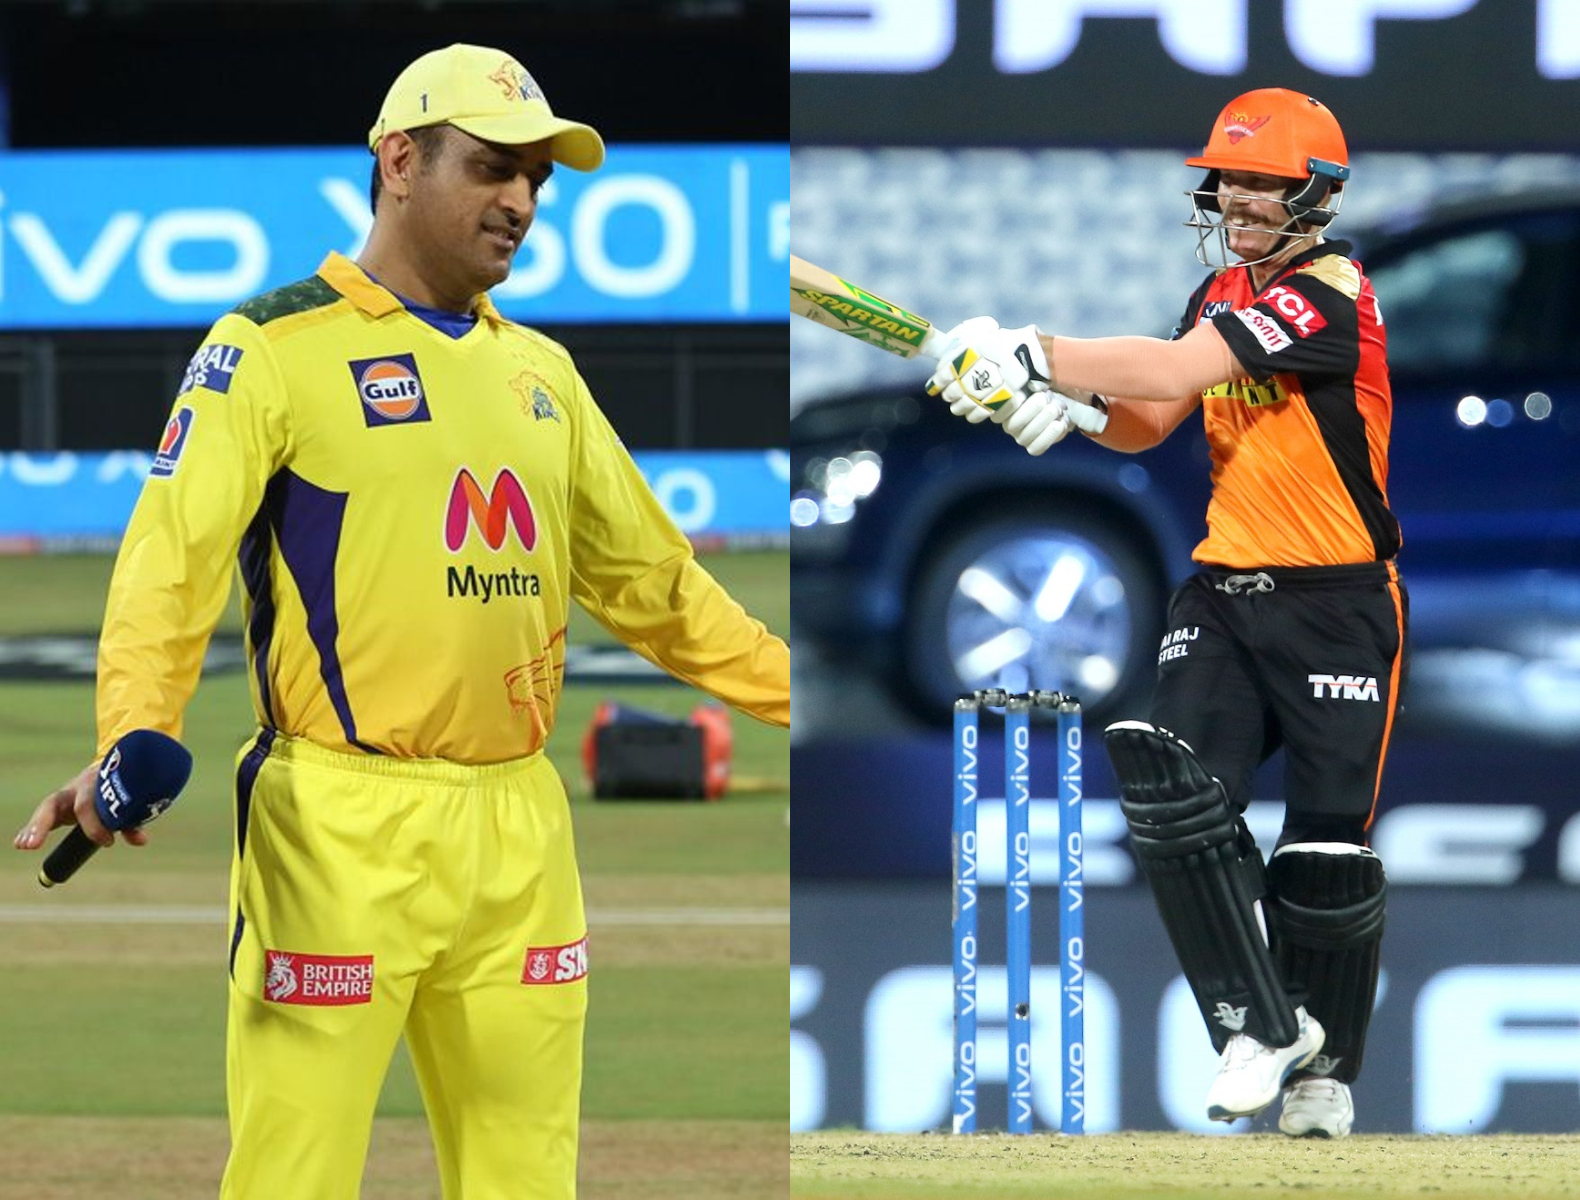 CSK is coming off a good run of wins while SRH has lost 4 out of 5 matches played. | BCCI-IPL